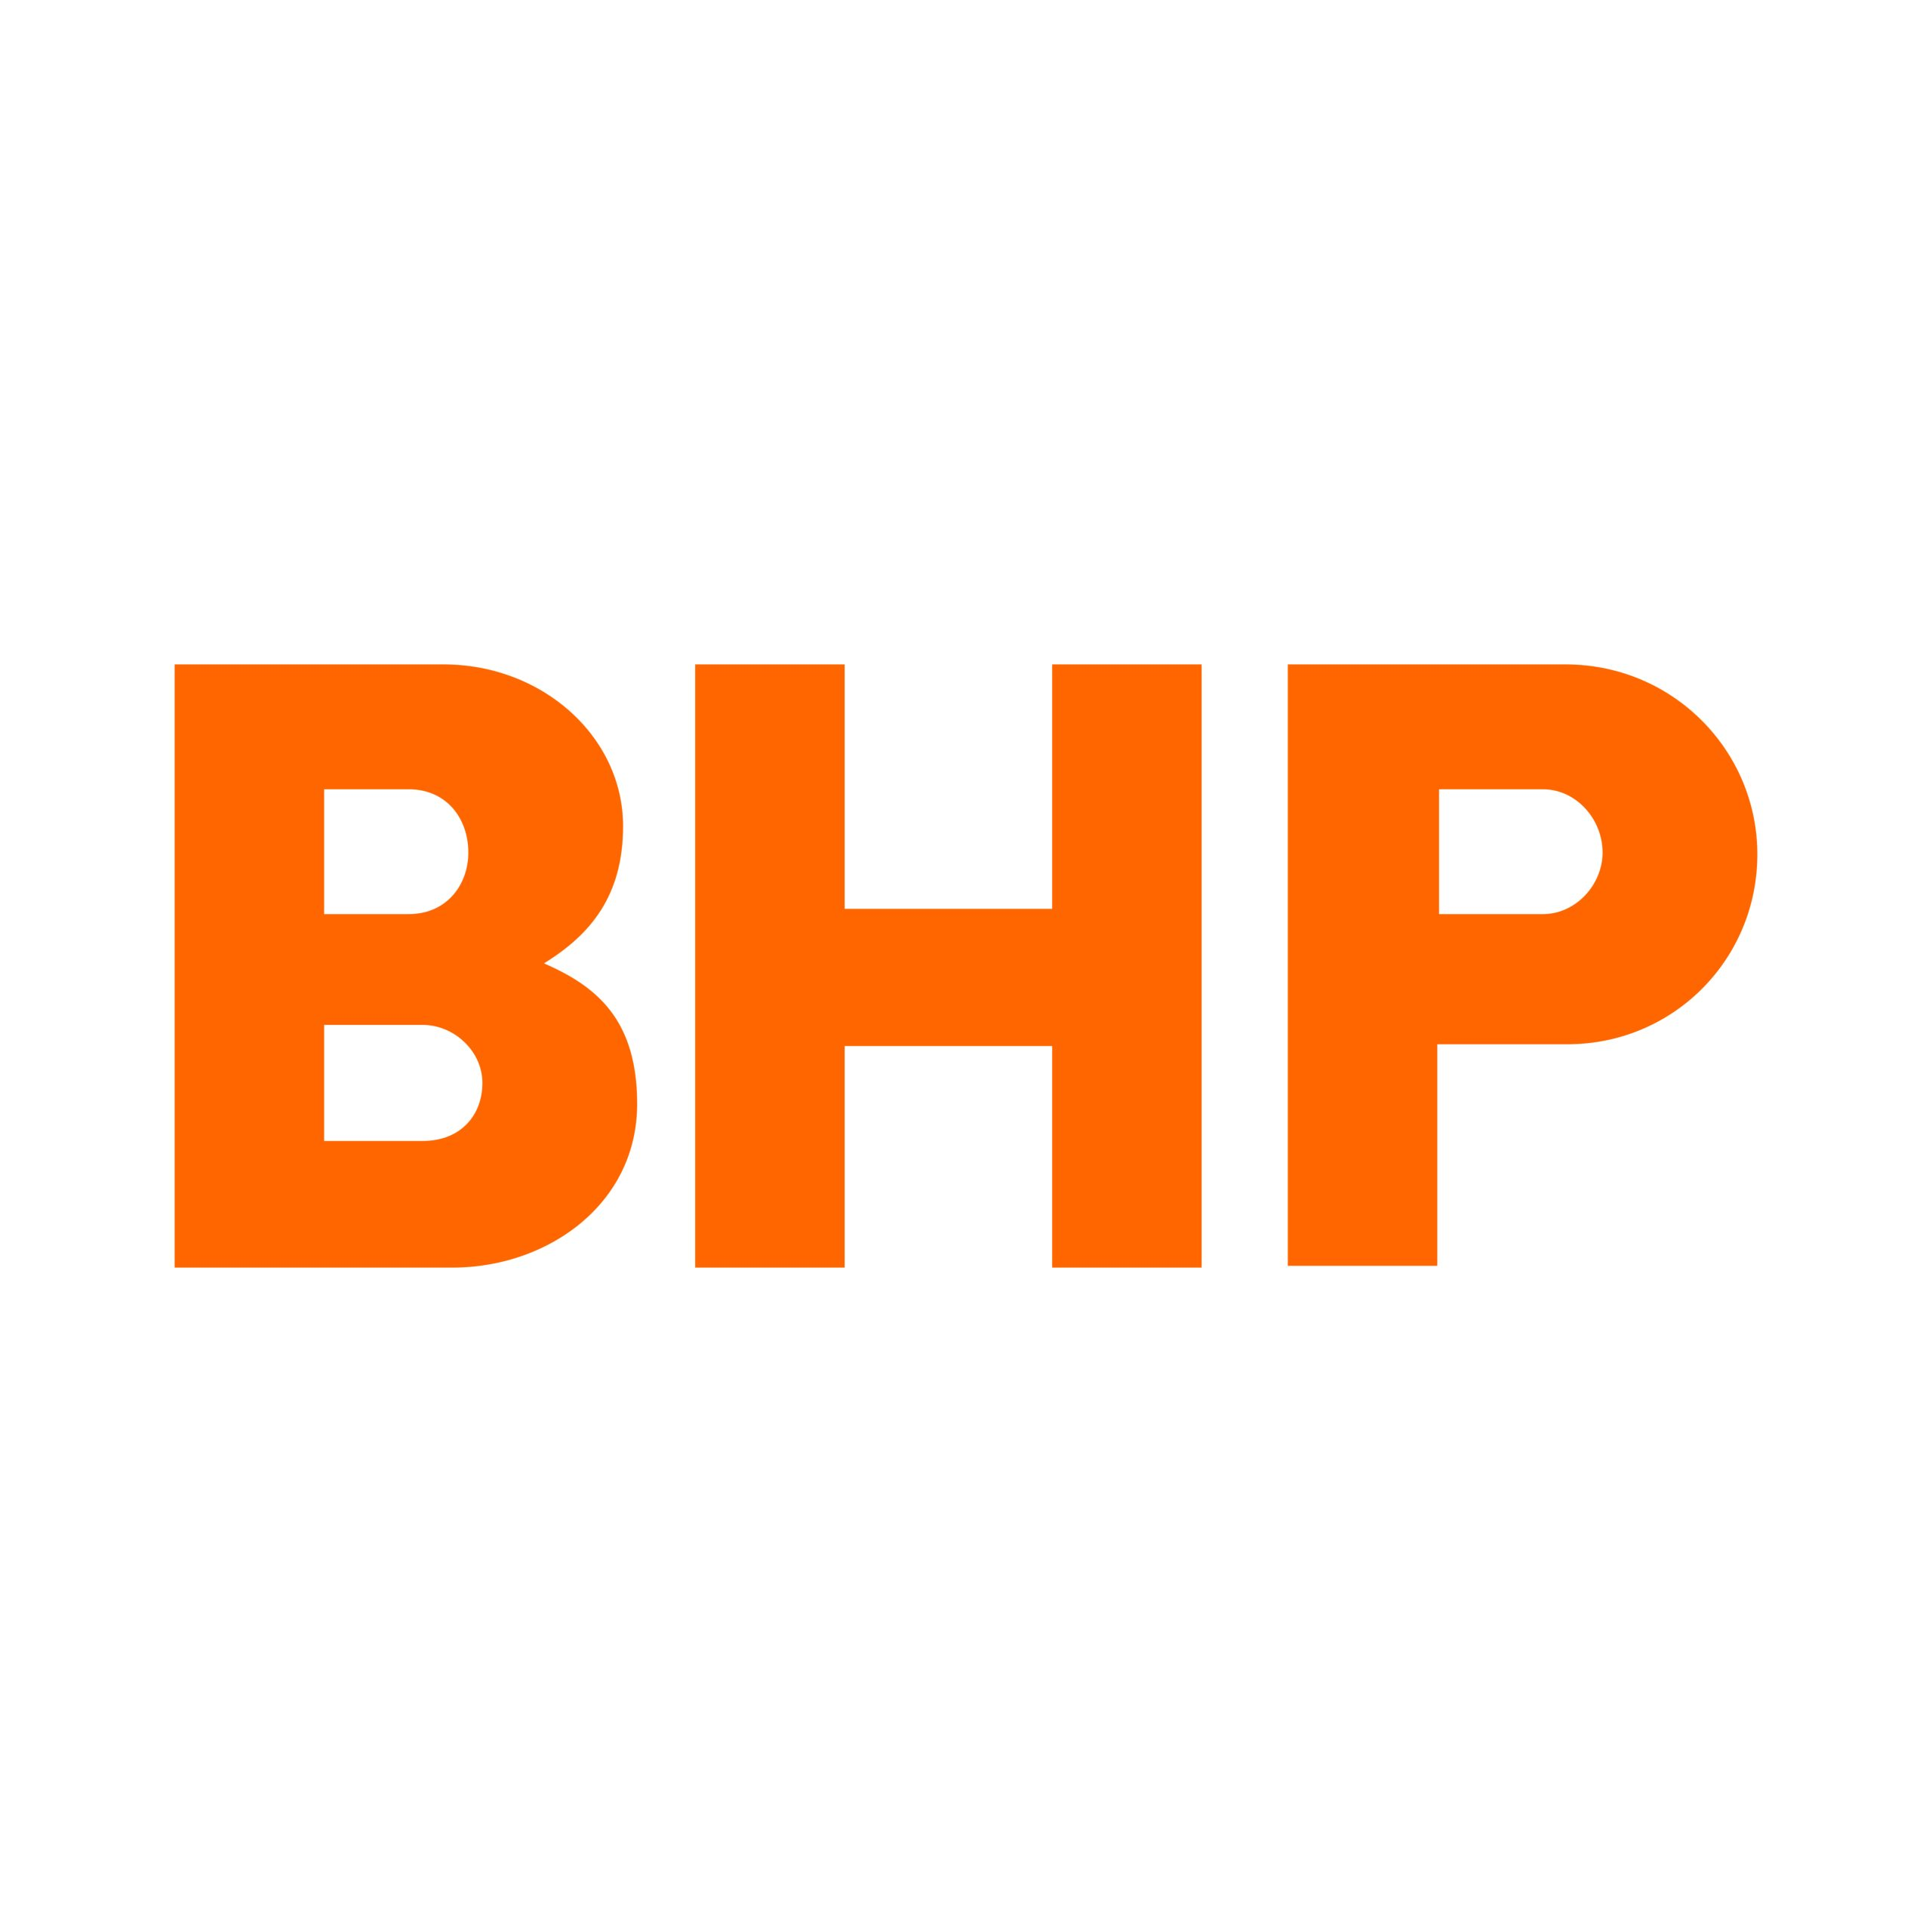 https://freightquip.com/production/wp-content/uploads/2020/07/bhp-logo-scaled.jpg